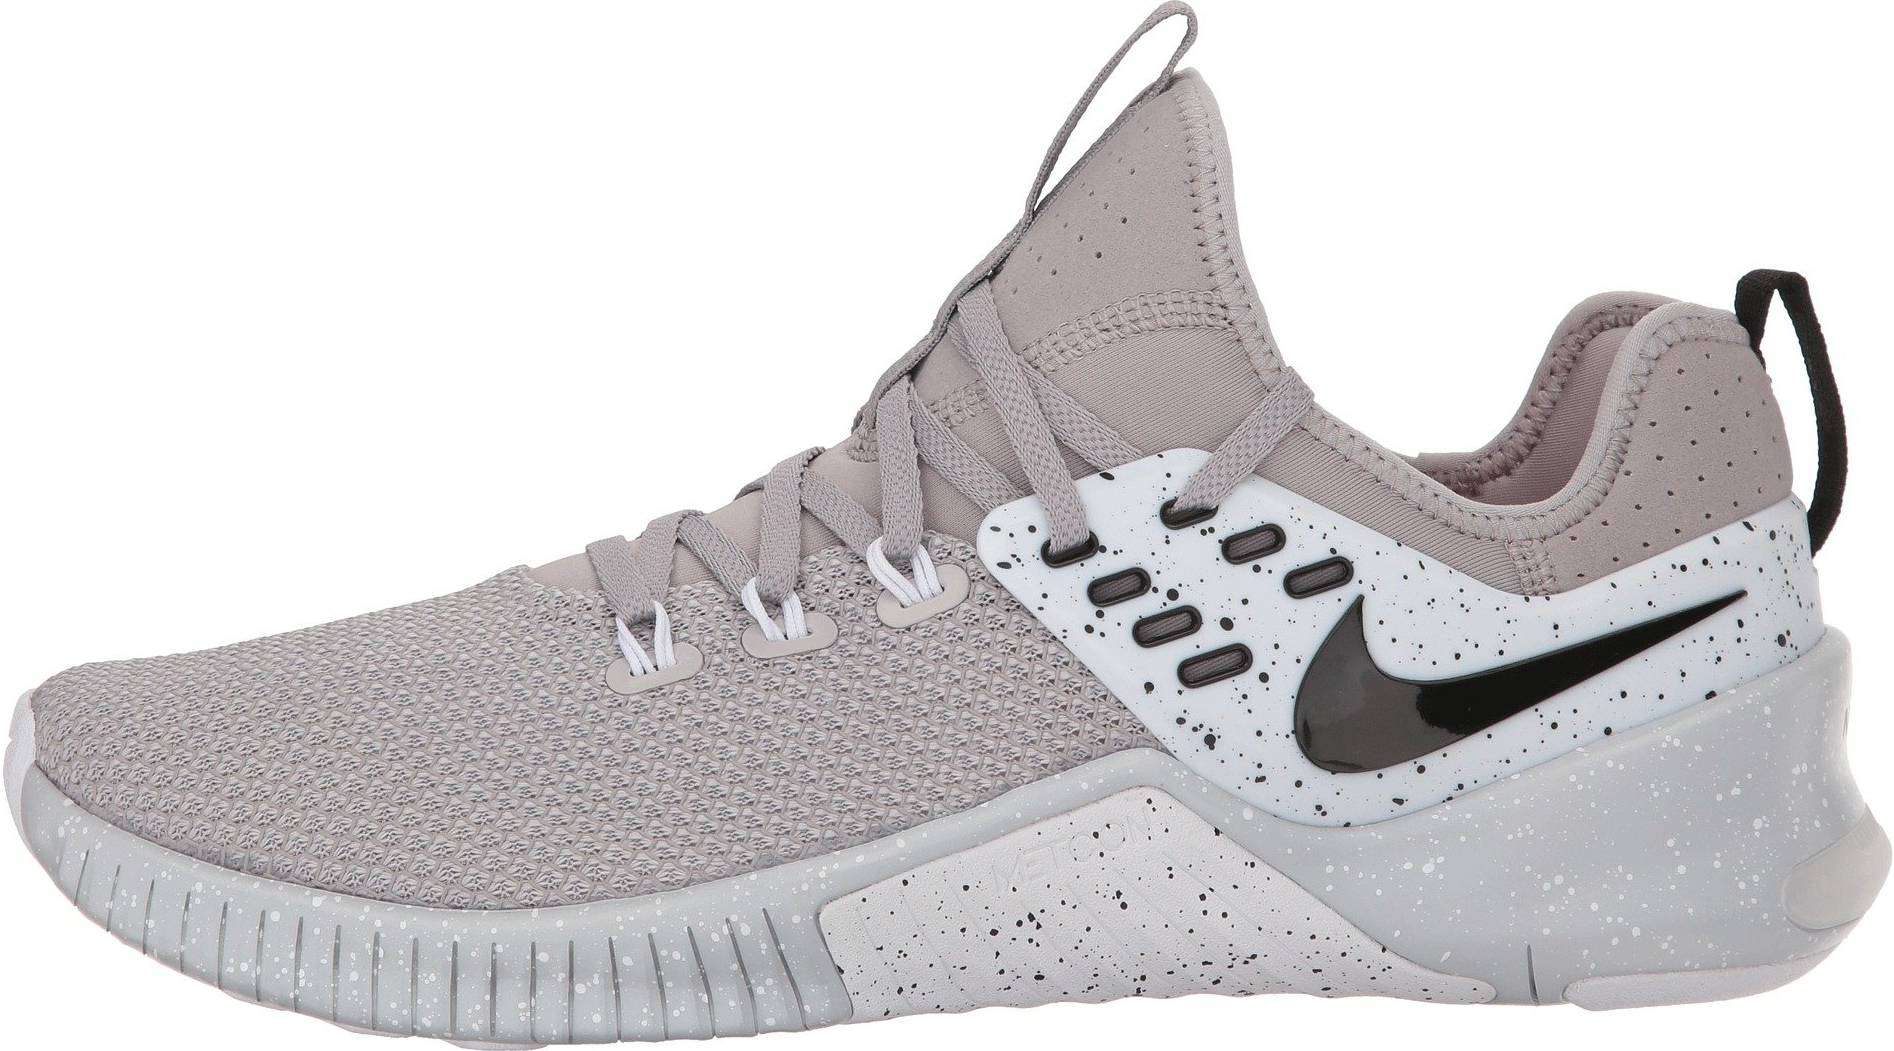 Nike Free X Metcon Deals 80 Facts Reviews 2021 Runrepeat